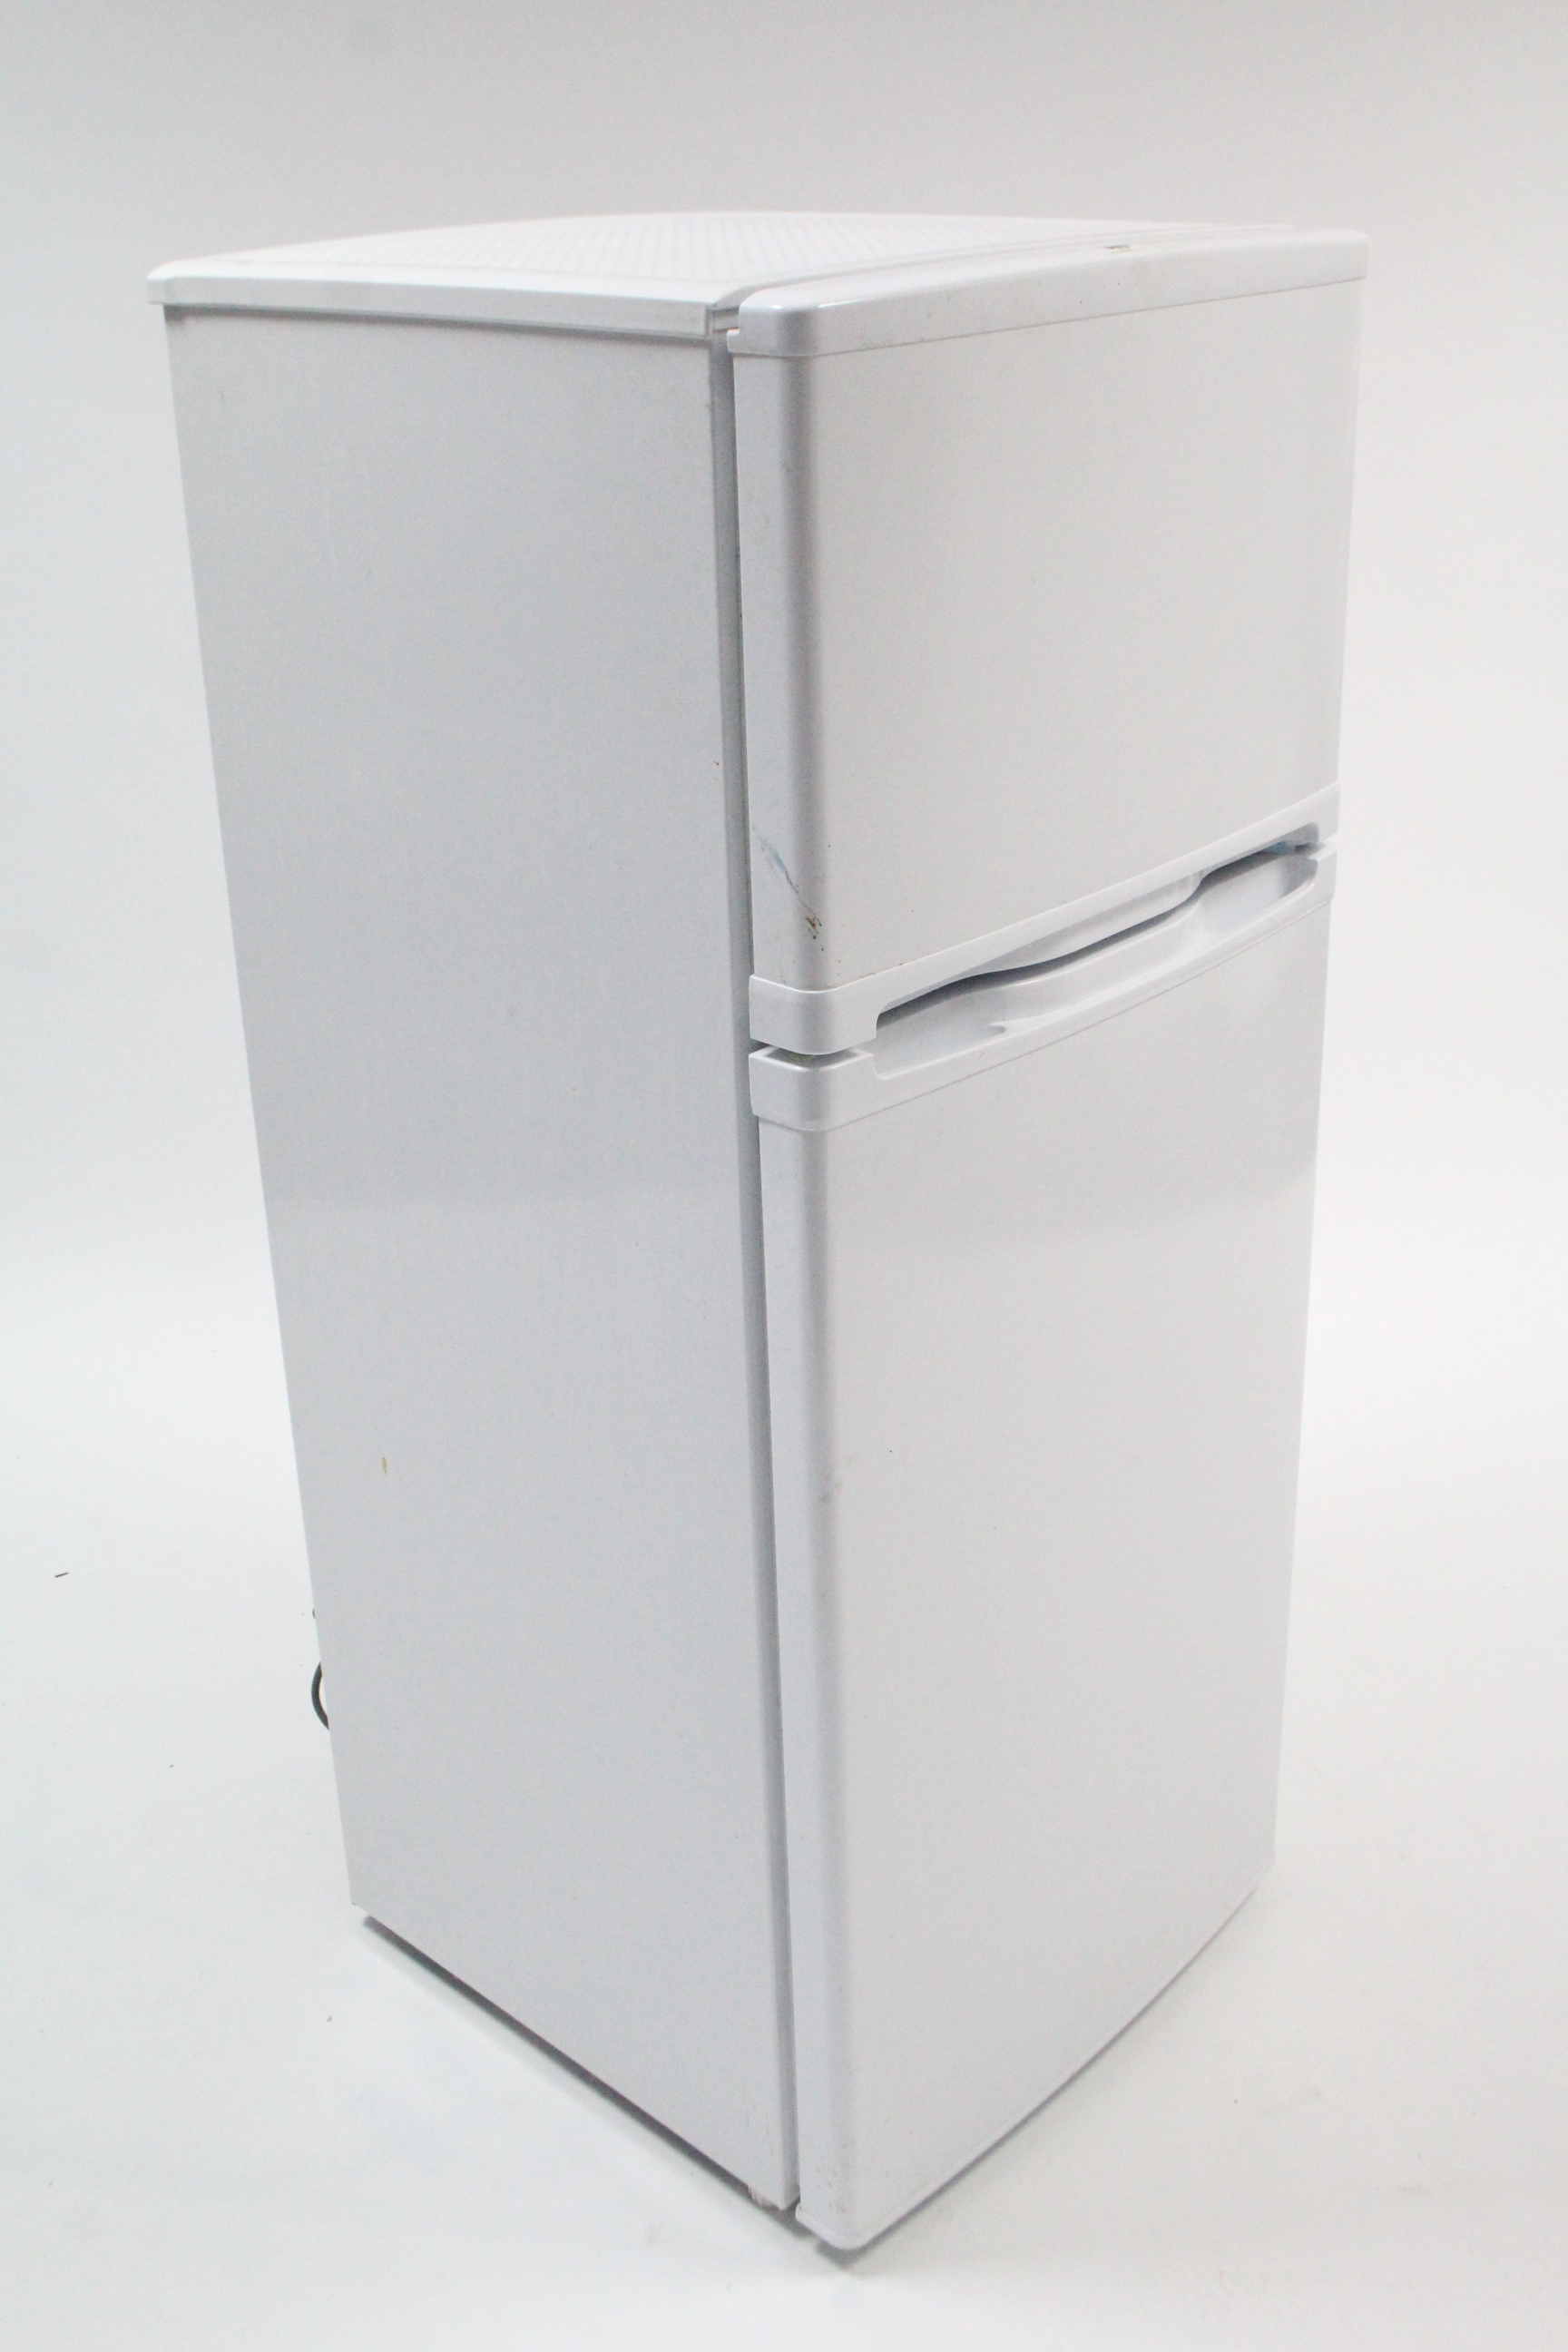 "Lot 309 - A small upright fridge-freezer in white finish case, w.o. 44½"" high."